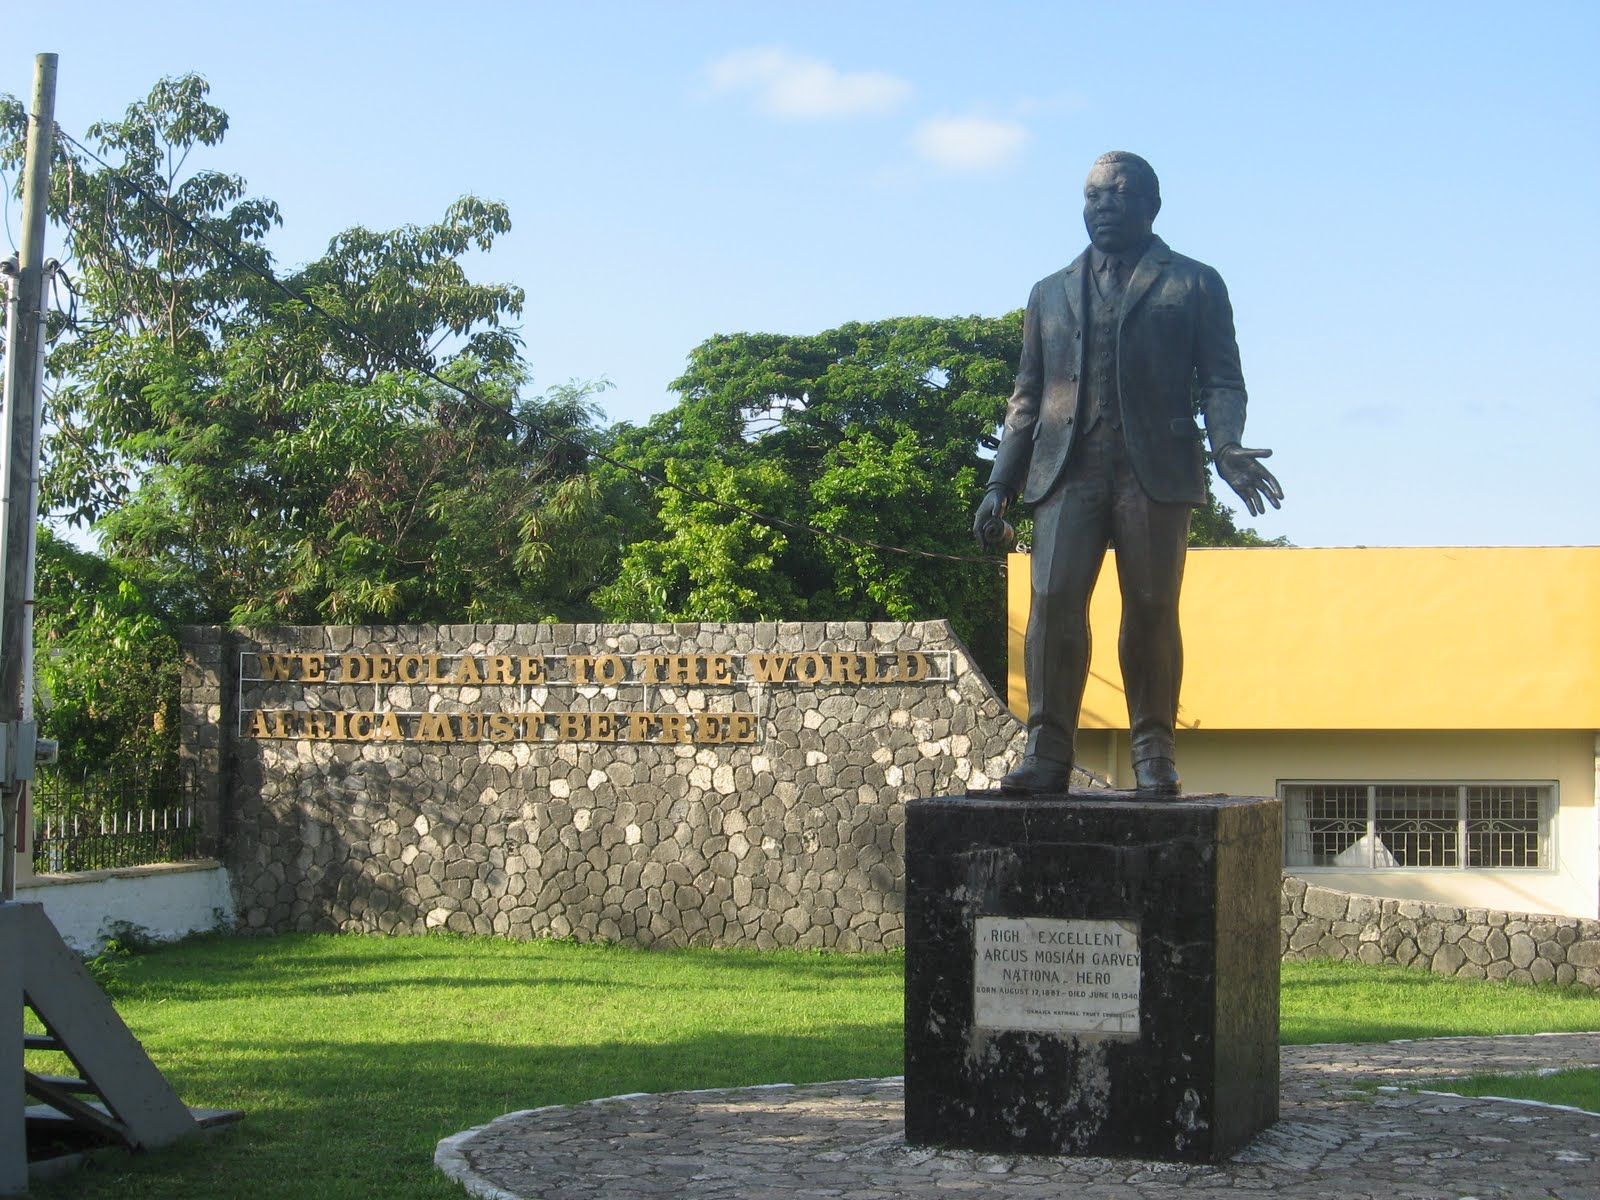 Marcus Garvey Statue St Ann's Bay, Michel's perspective: YES WE CAN